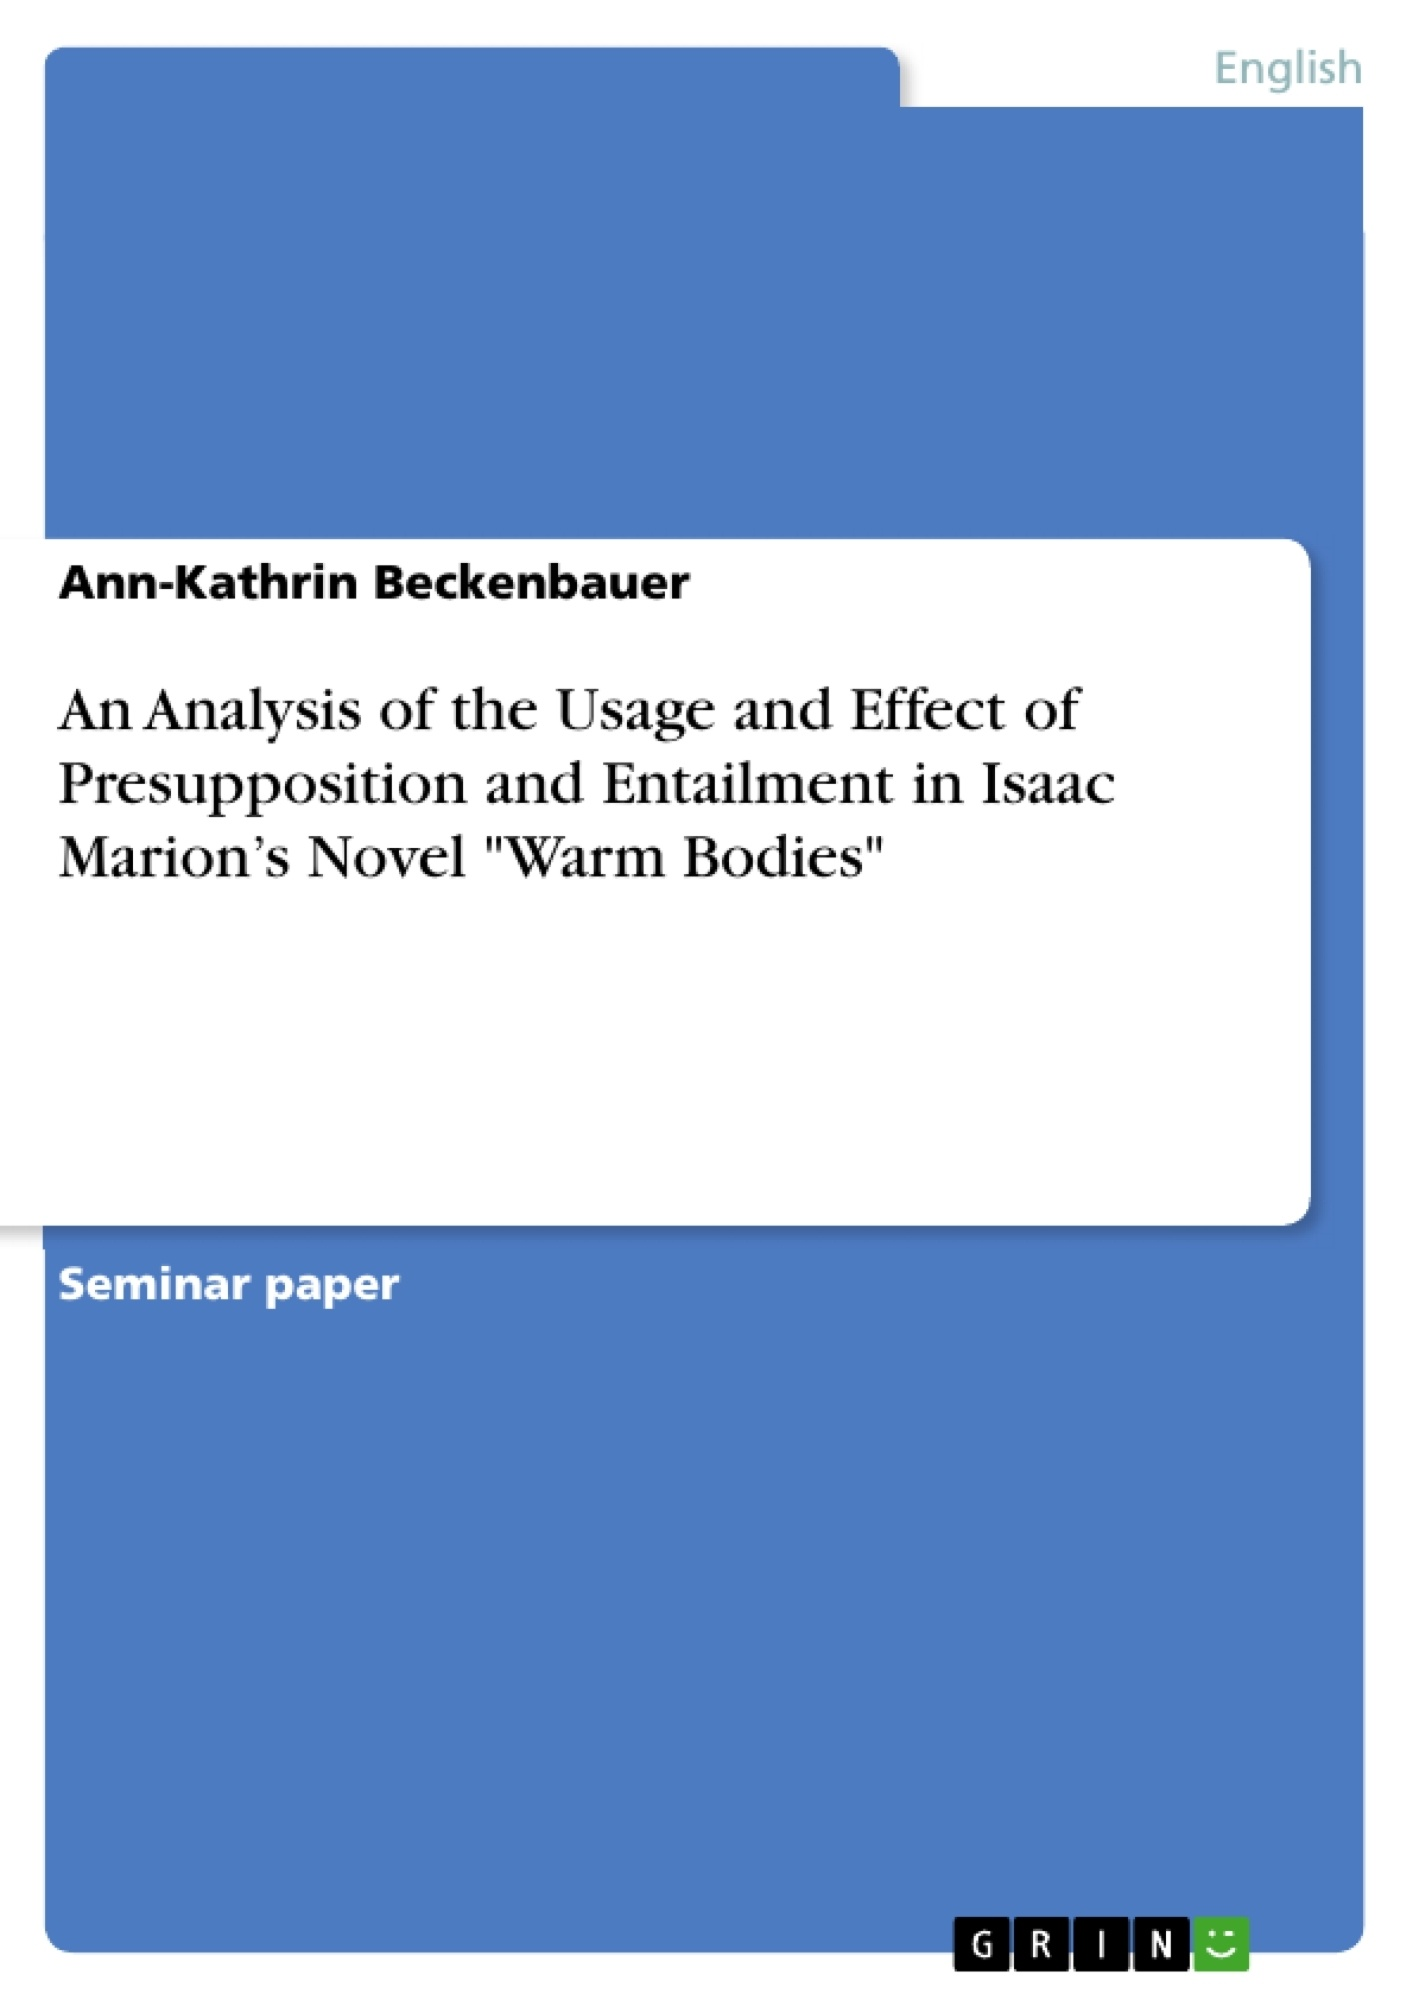 """Title: An Analysis of the Usage and Effect of Presupposition and Entailment in Isaac Marion's Novel """"Warm Bodies"""""""